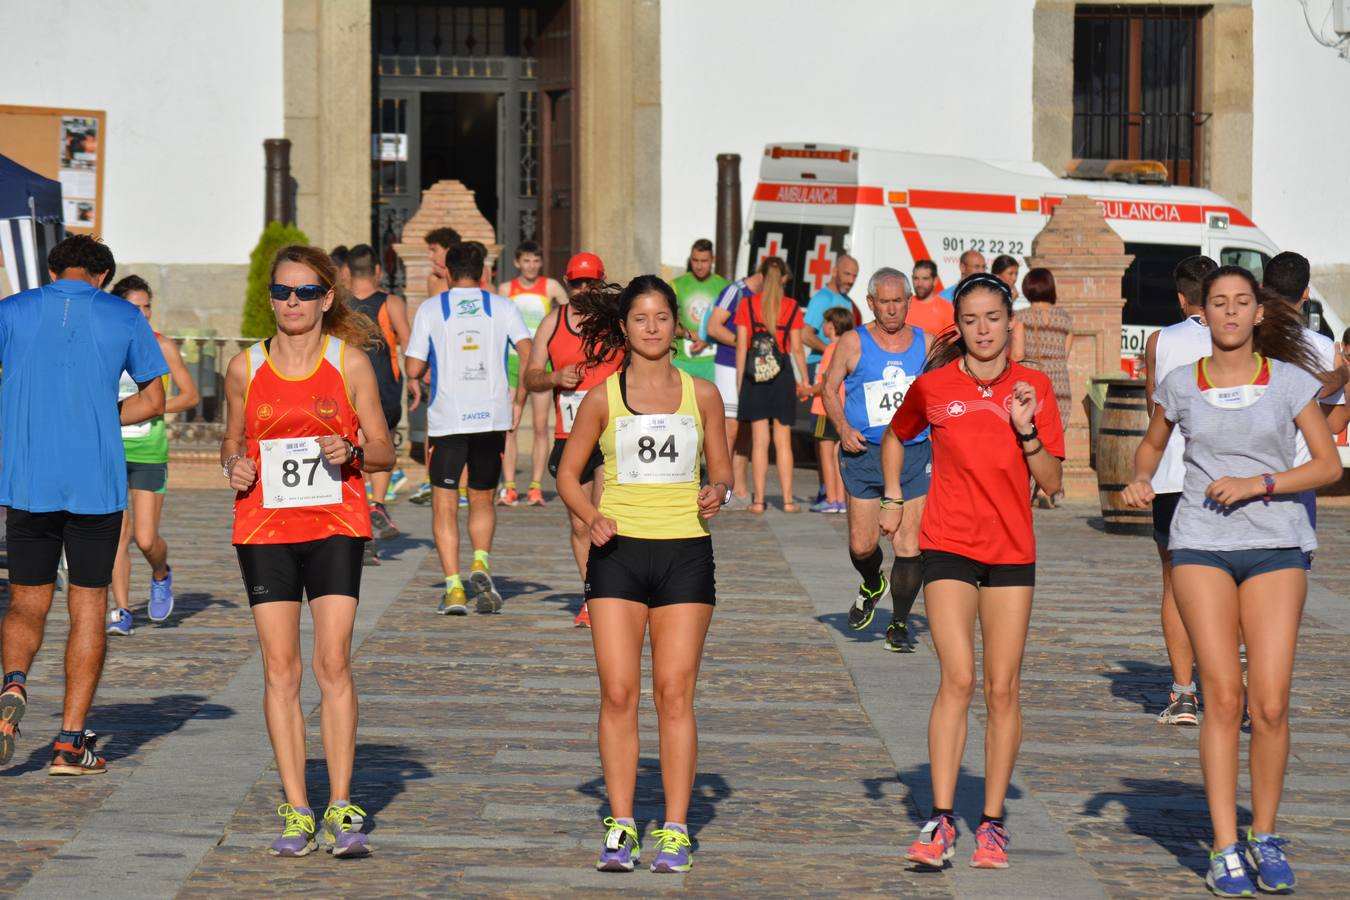 CARRERA POPULAR DE FREGENAL